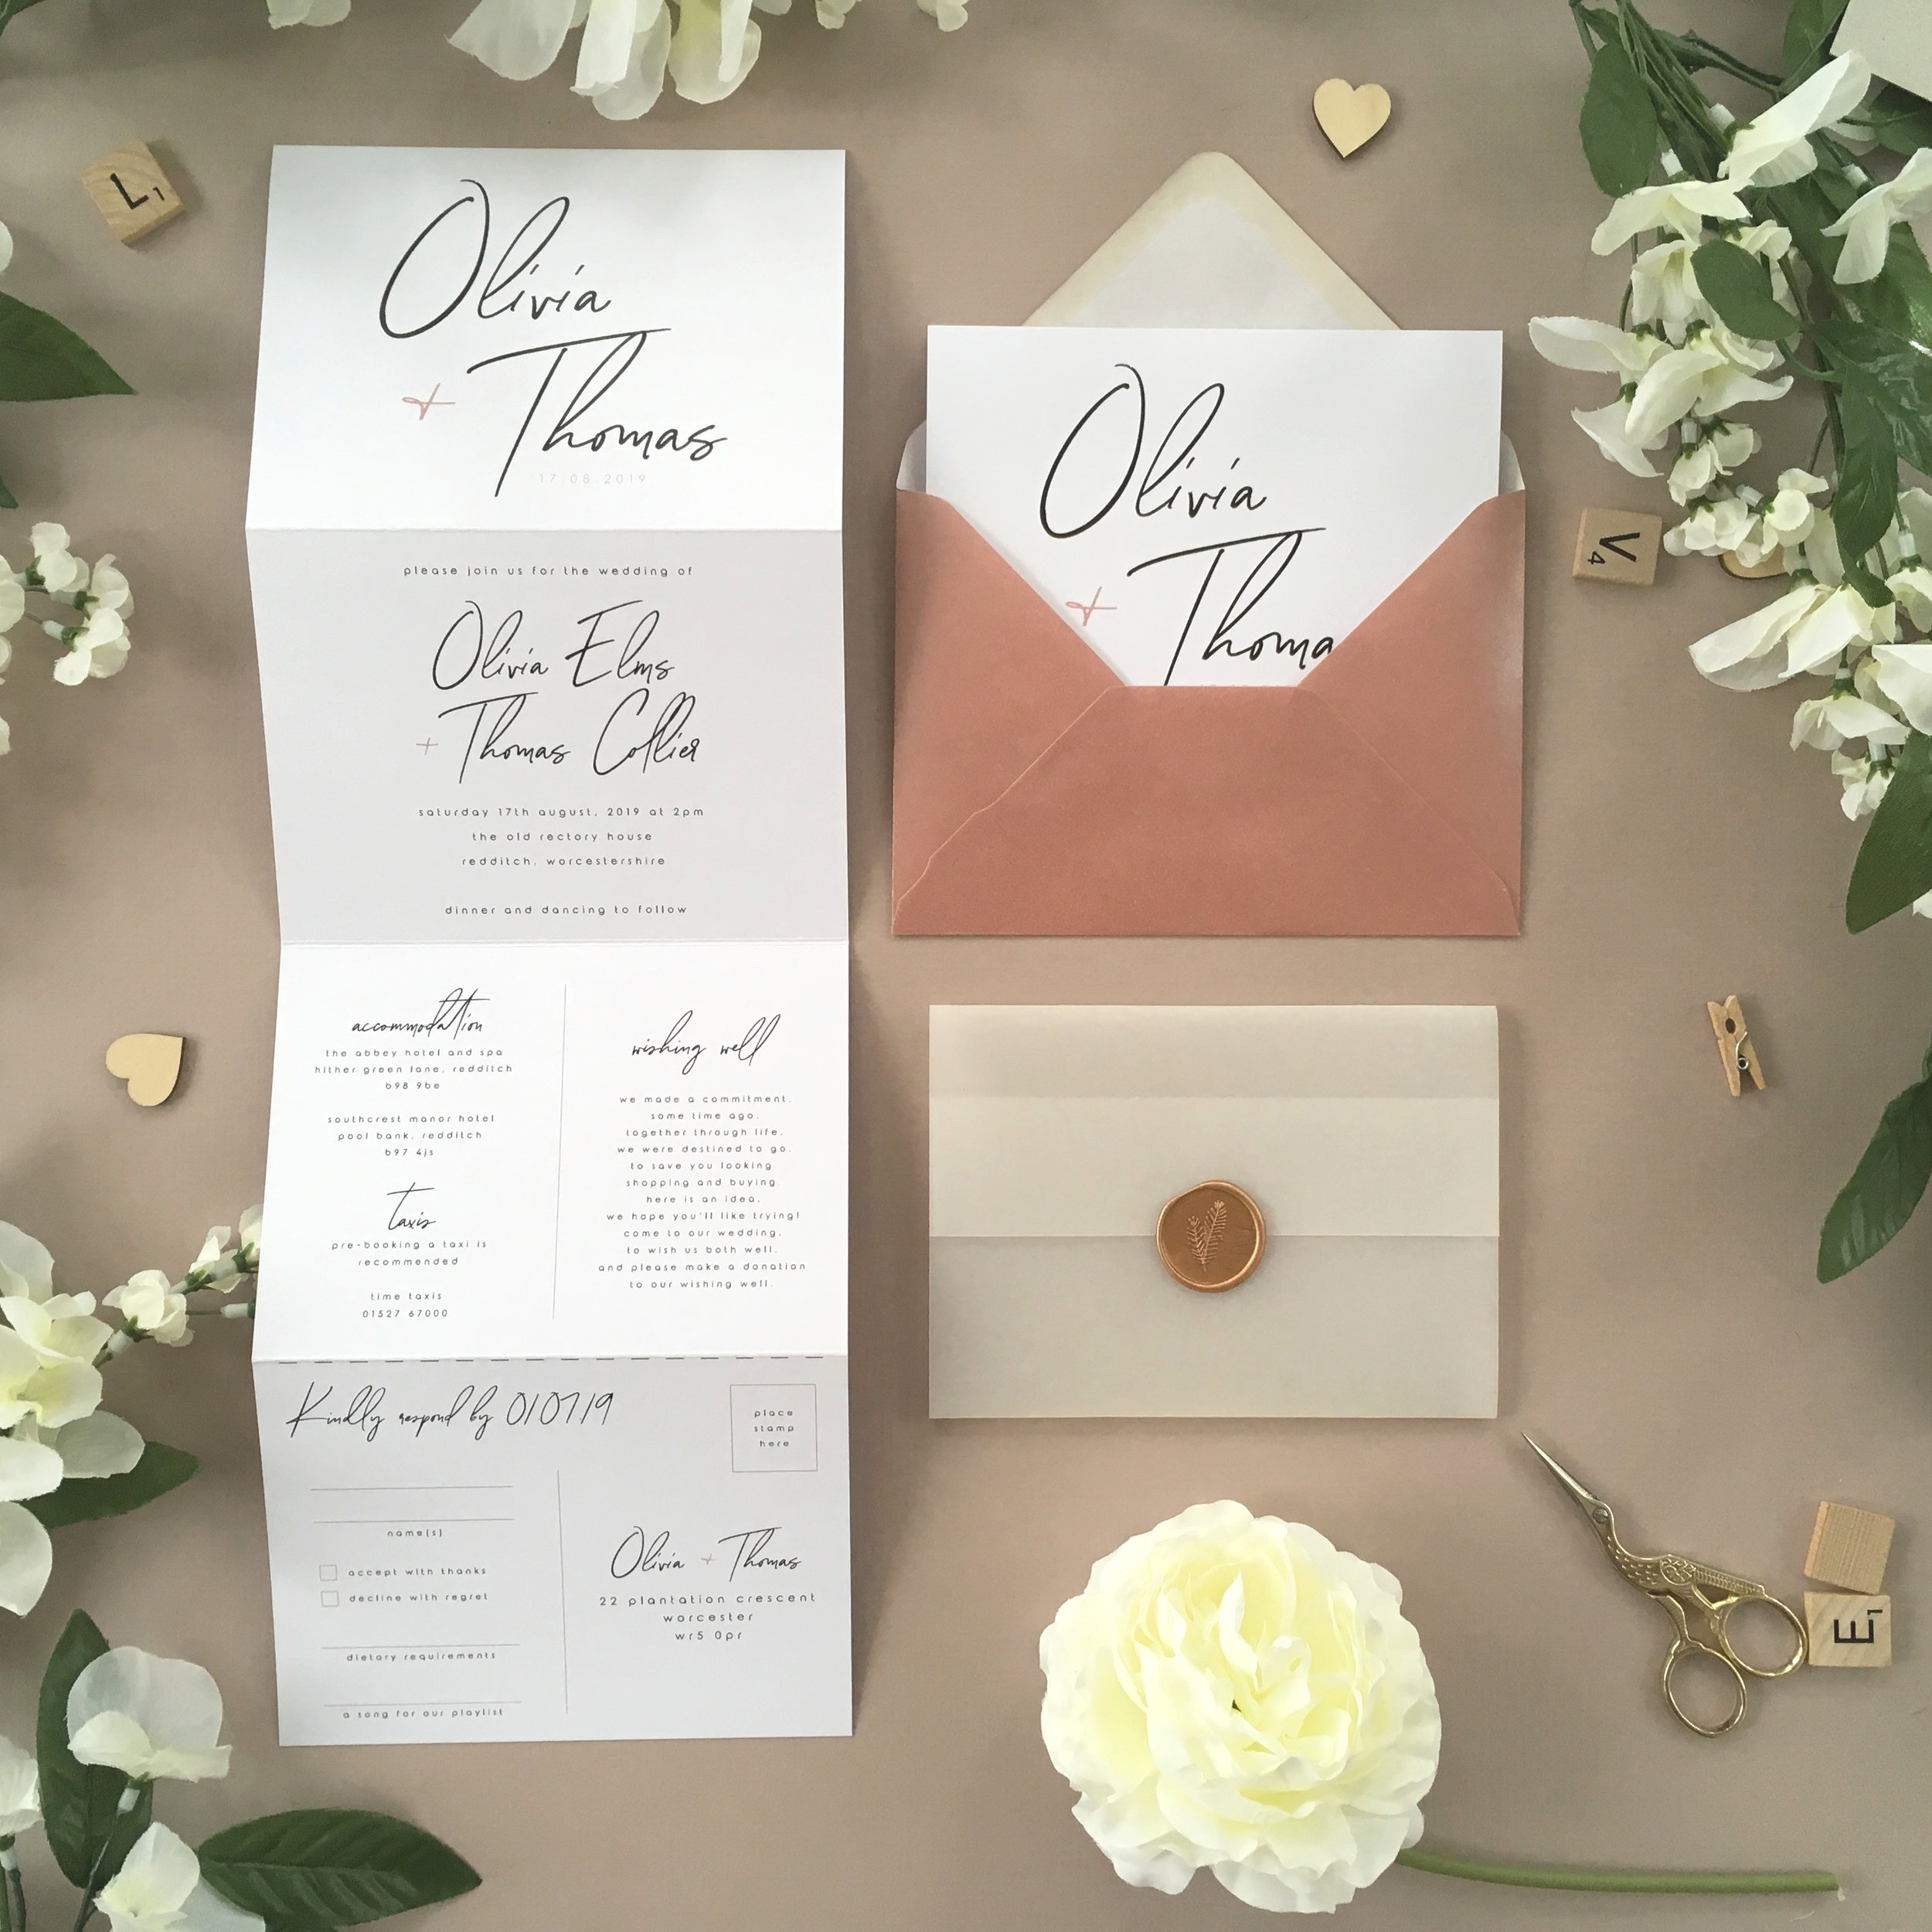 Chelsea - A beautiful handwritten script creates a modern and striking wedding invitation design from our new Chelsea collection.Our concertina invitations are a great all-in-one solution, with a detachable RSVP at the bottom of the invitation - all guests need to do is fill in their details, put a stamp in the corner and post!Concertina invitations can be provided on an as-is basis, or can be provided bound with a vellum jacket and timeless wax seal, or tied with ribbon or twine for a lovely hand-finished approach.- Concertina Invitation - from £1.95- Ribbon or Twine - £0.40- Vellum Jacket - £0.40- Wax Seal - £0.85 (Custom engraving also available)White envelope provided as standard with coloured upgrade available.